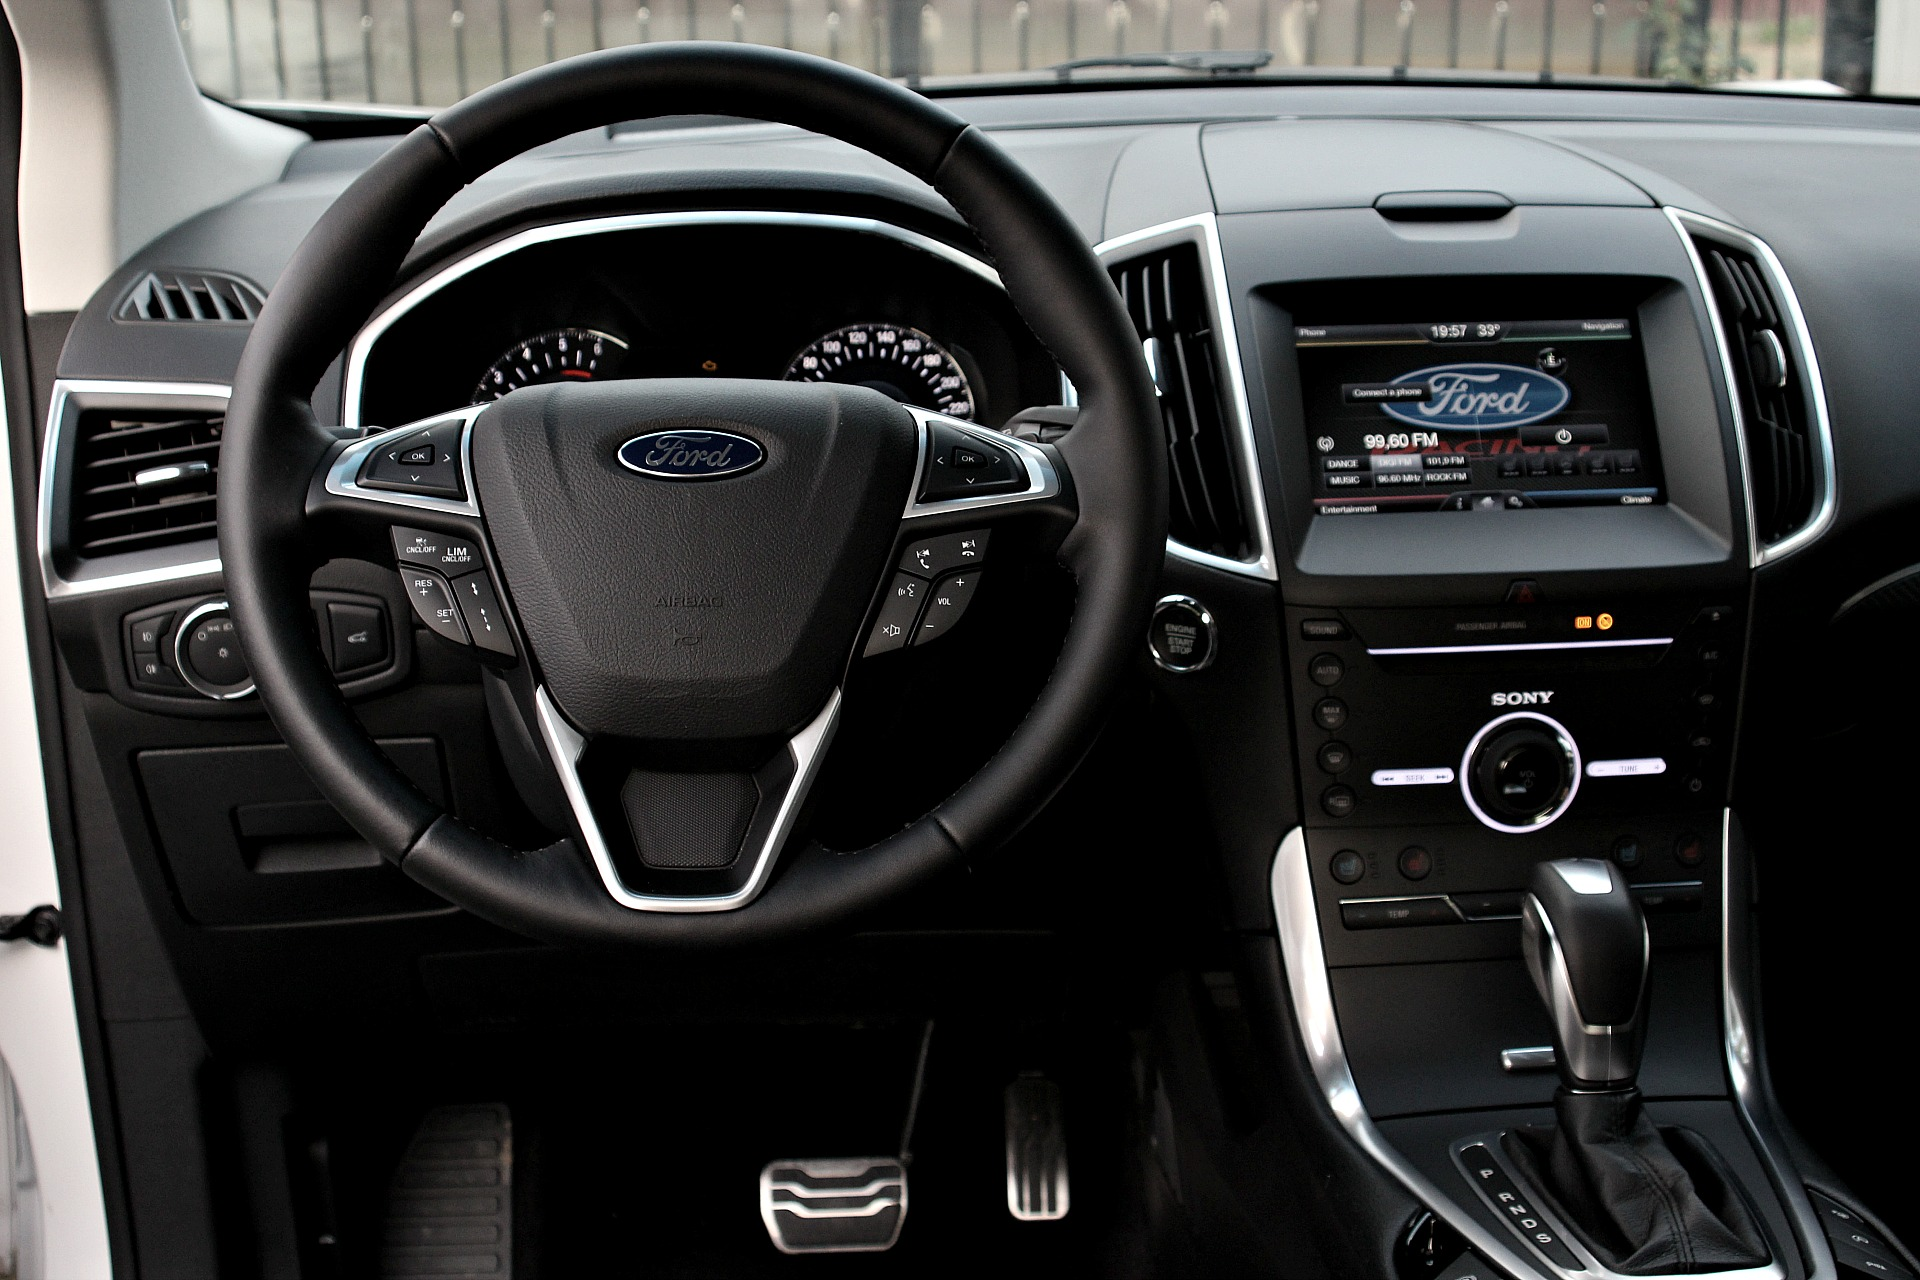 Ford Edge Interior (14)